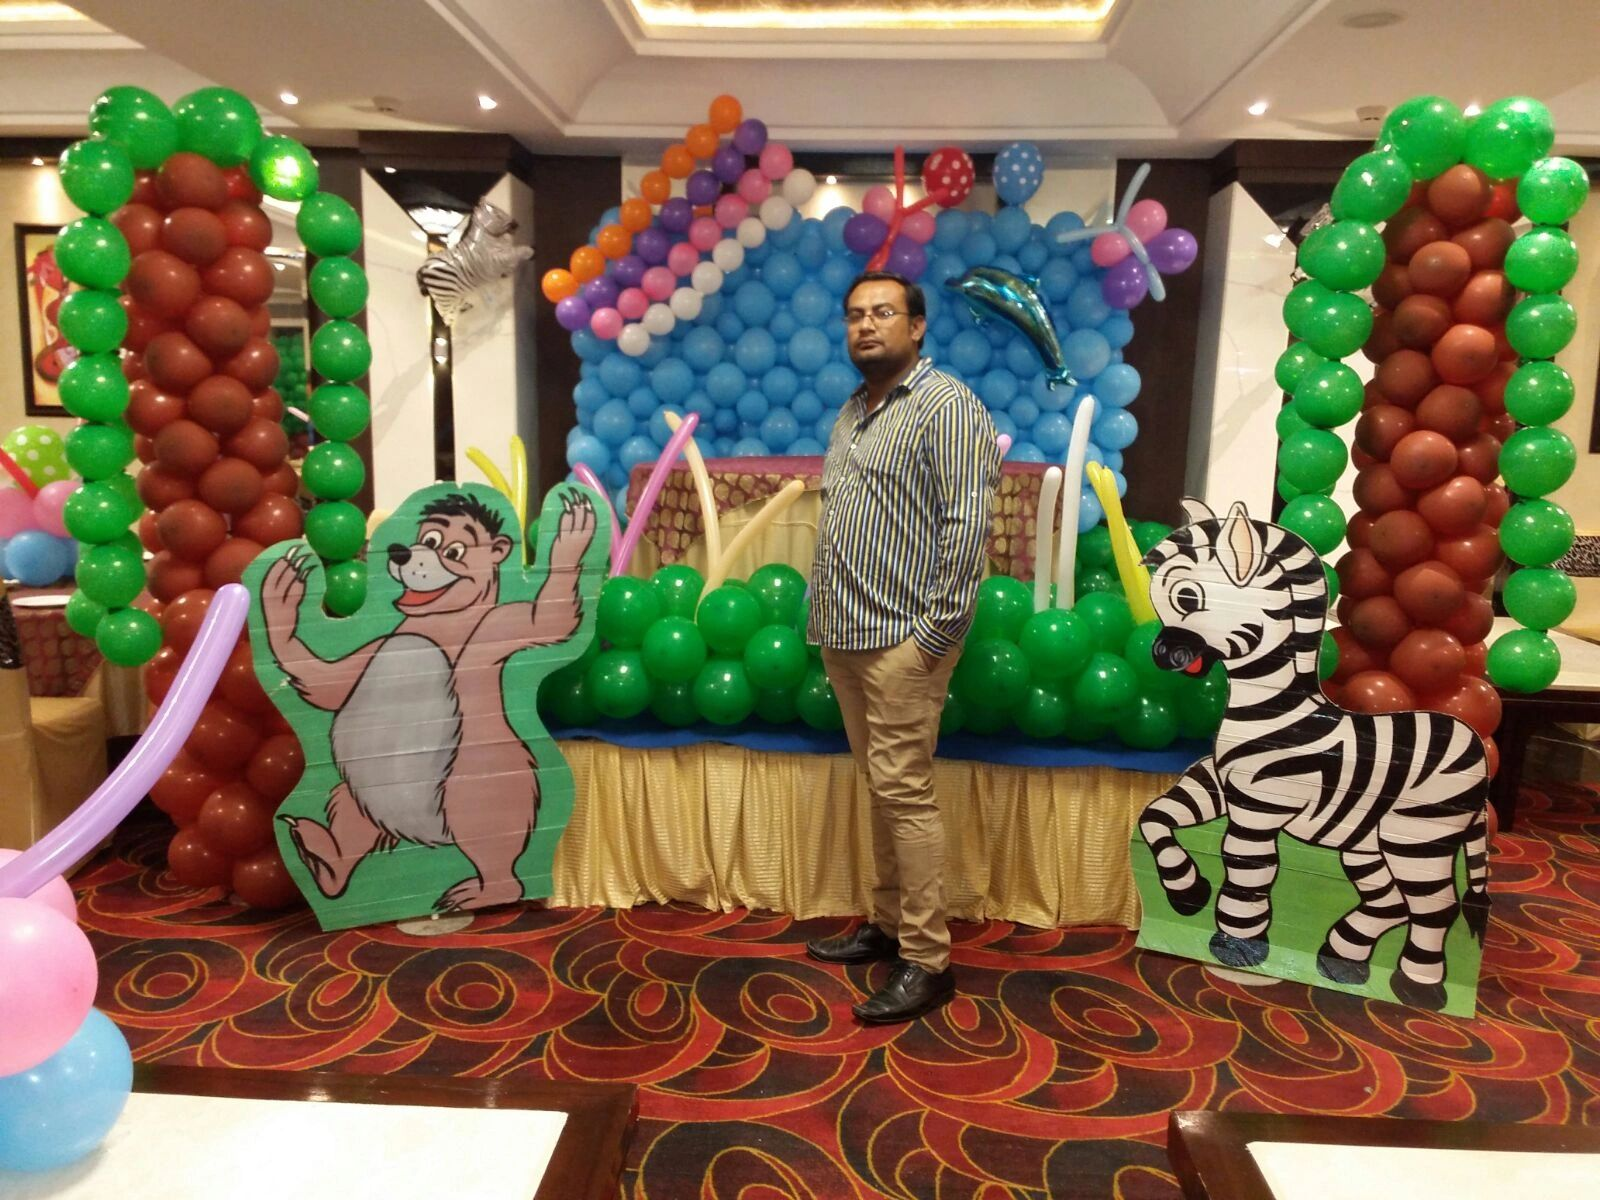 "{""blocks"":[{""key"":""41n9j"",""text"":""jungle theme party planner in delhi, gurgaon & faridabad  "",""type"":""unstyled"",""depth"":0,""inlineStyleRanges"":[],""entityRanges"":[],""data"":{}}],""entityMap"":{}}"